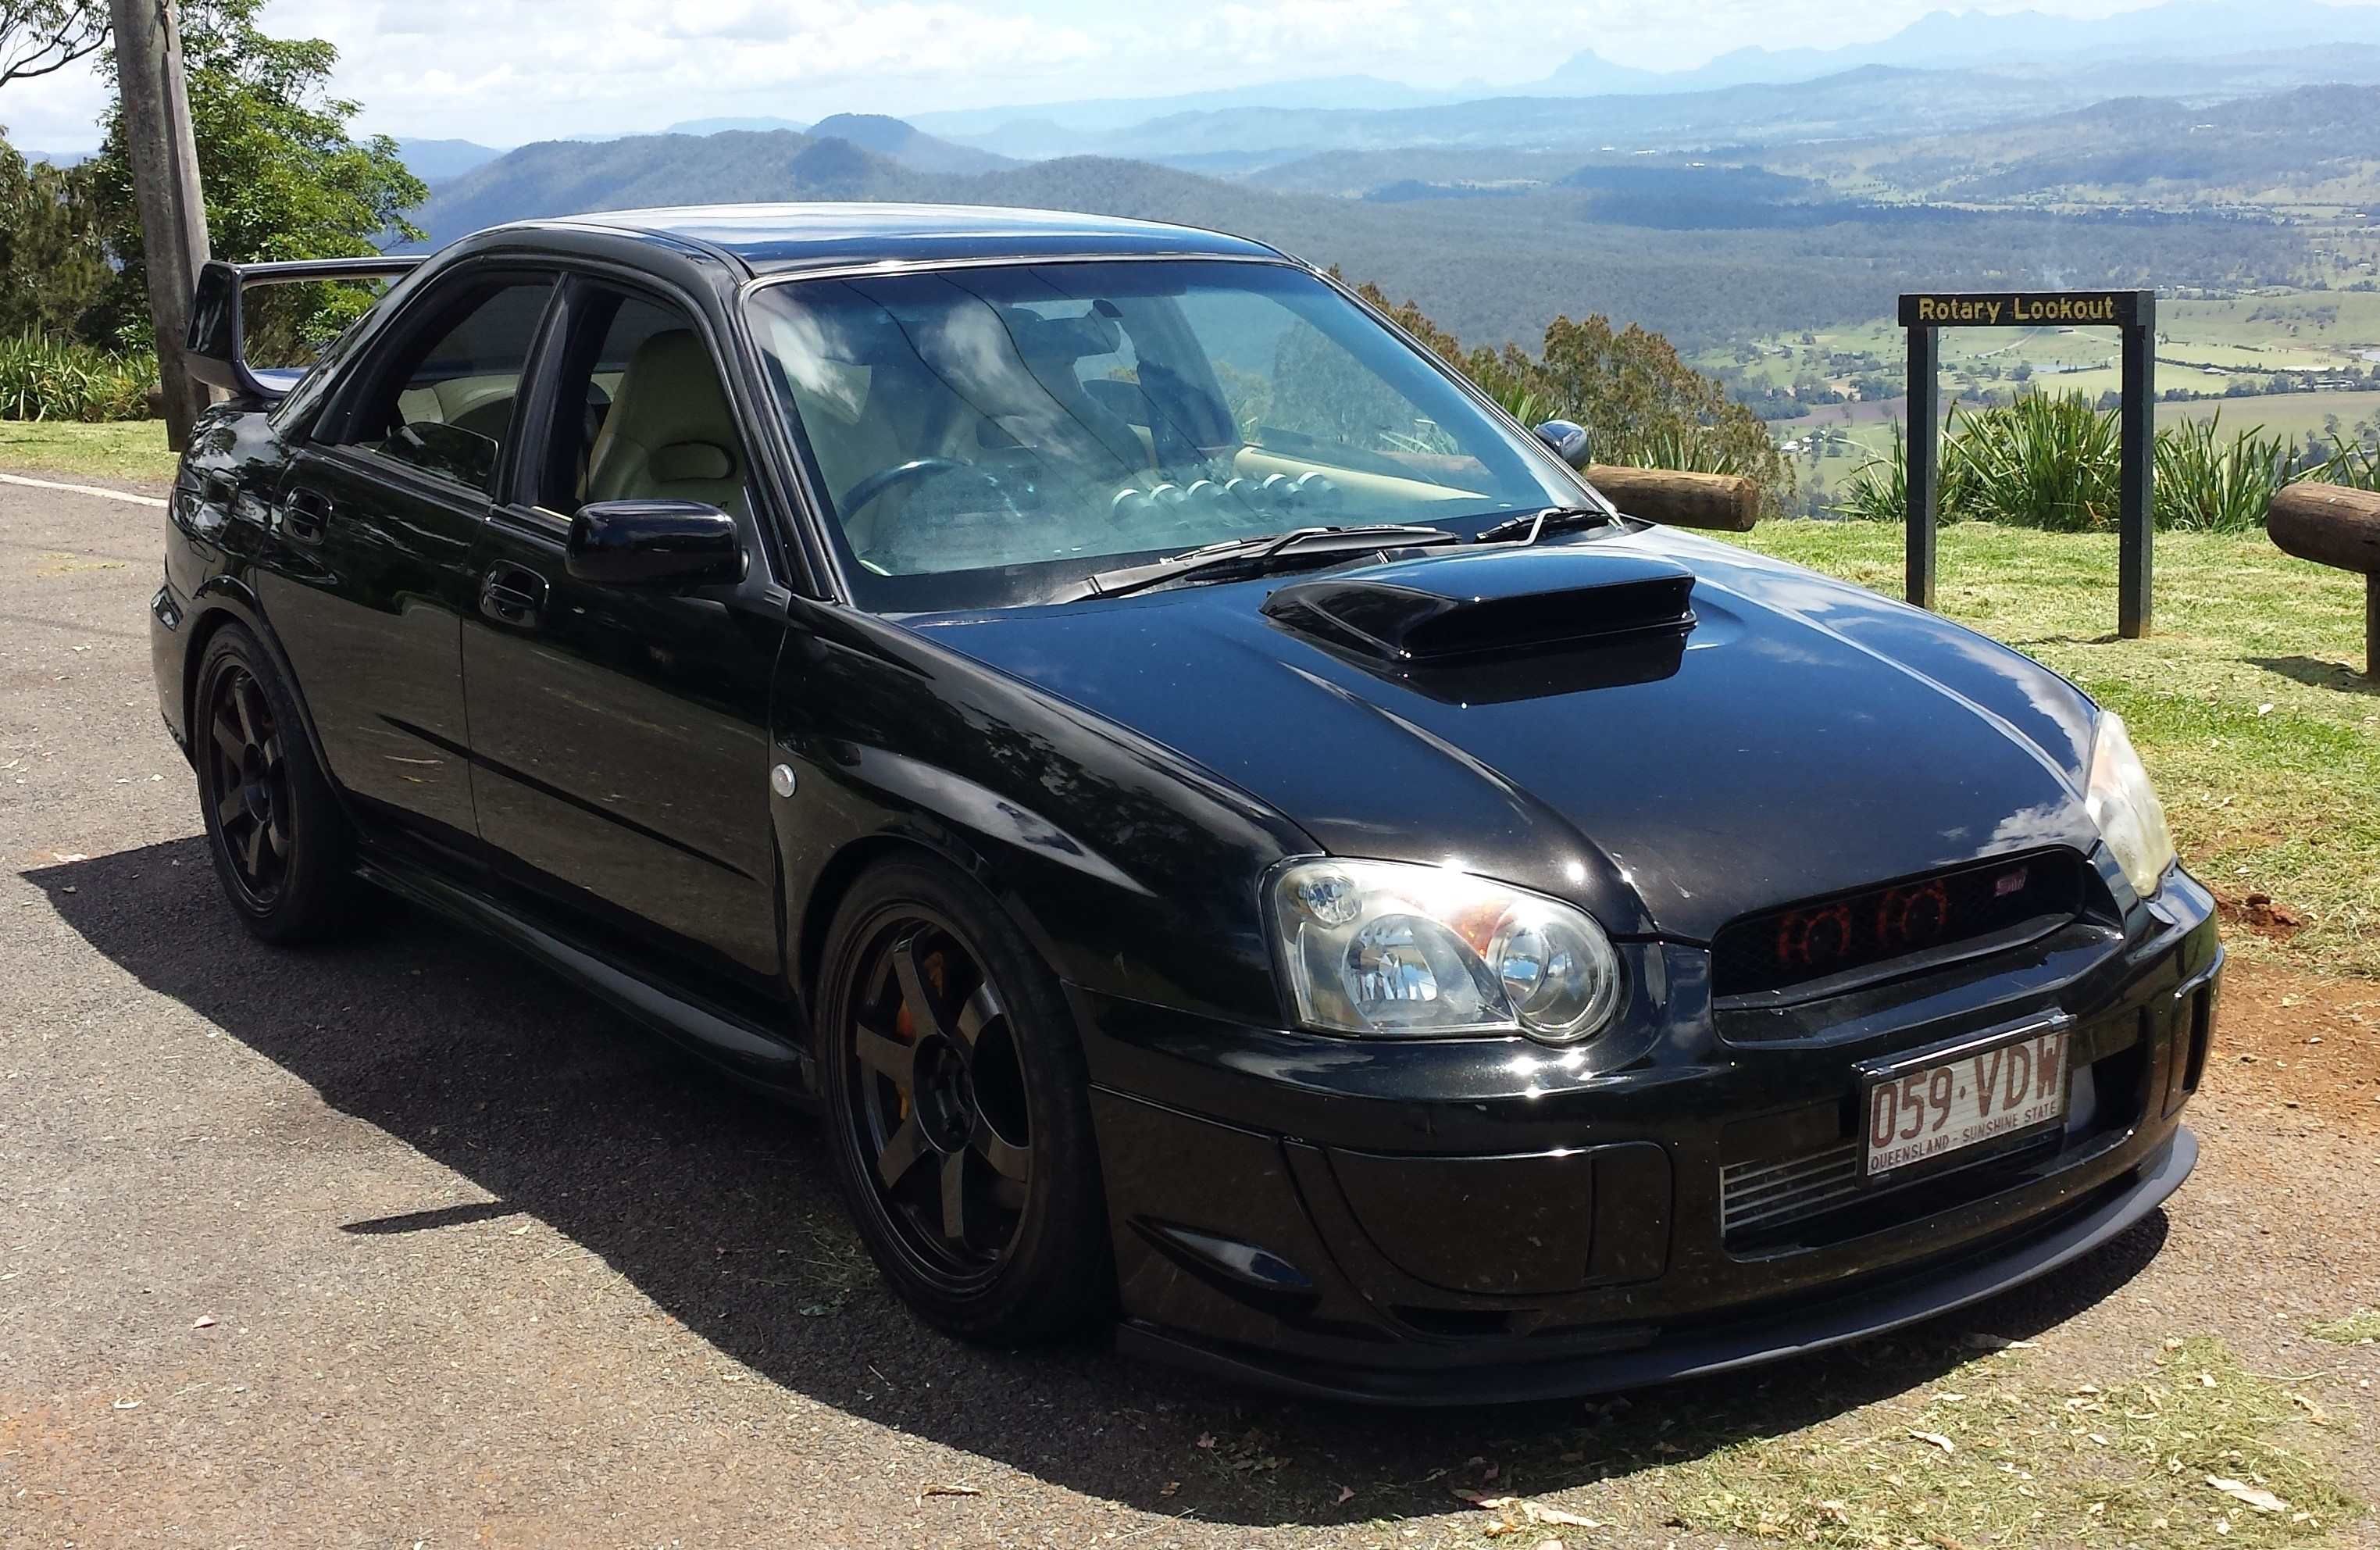 2003 subaru impreza wrx sti my03 car sales qld gold coast 2920761. Black Bedroom Furniture Sets. Home Design Ideas